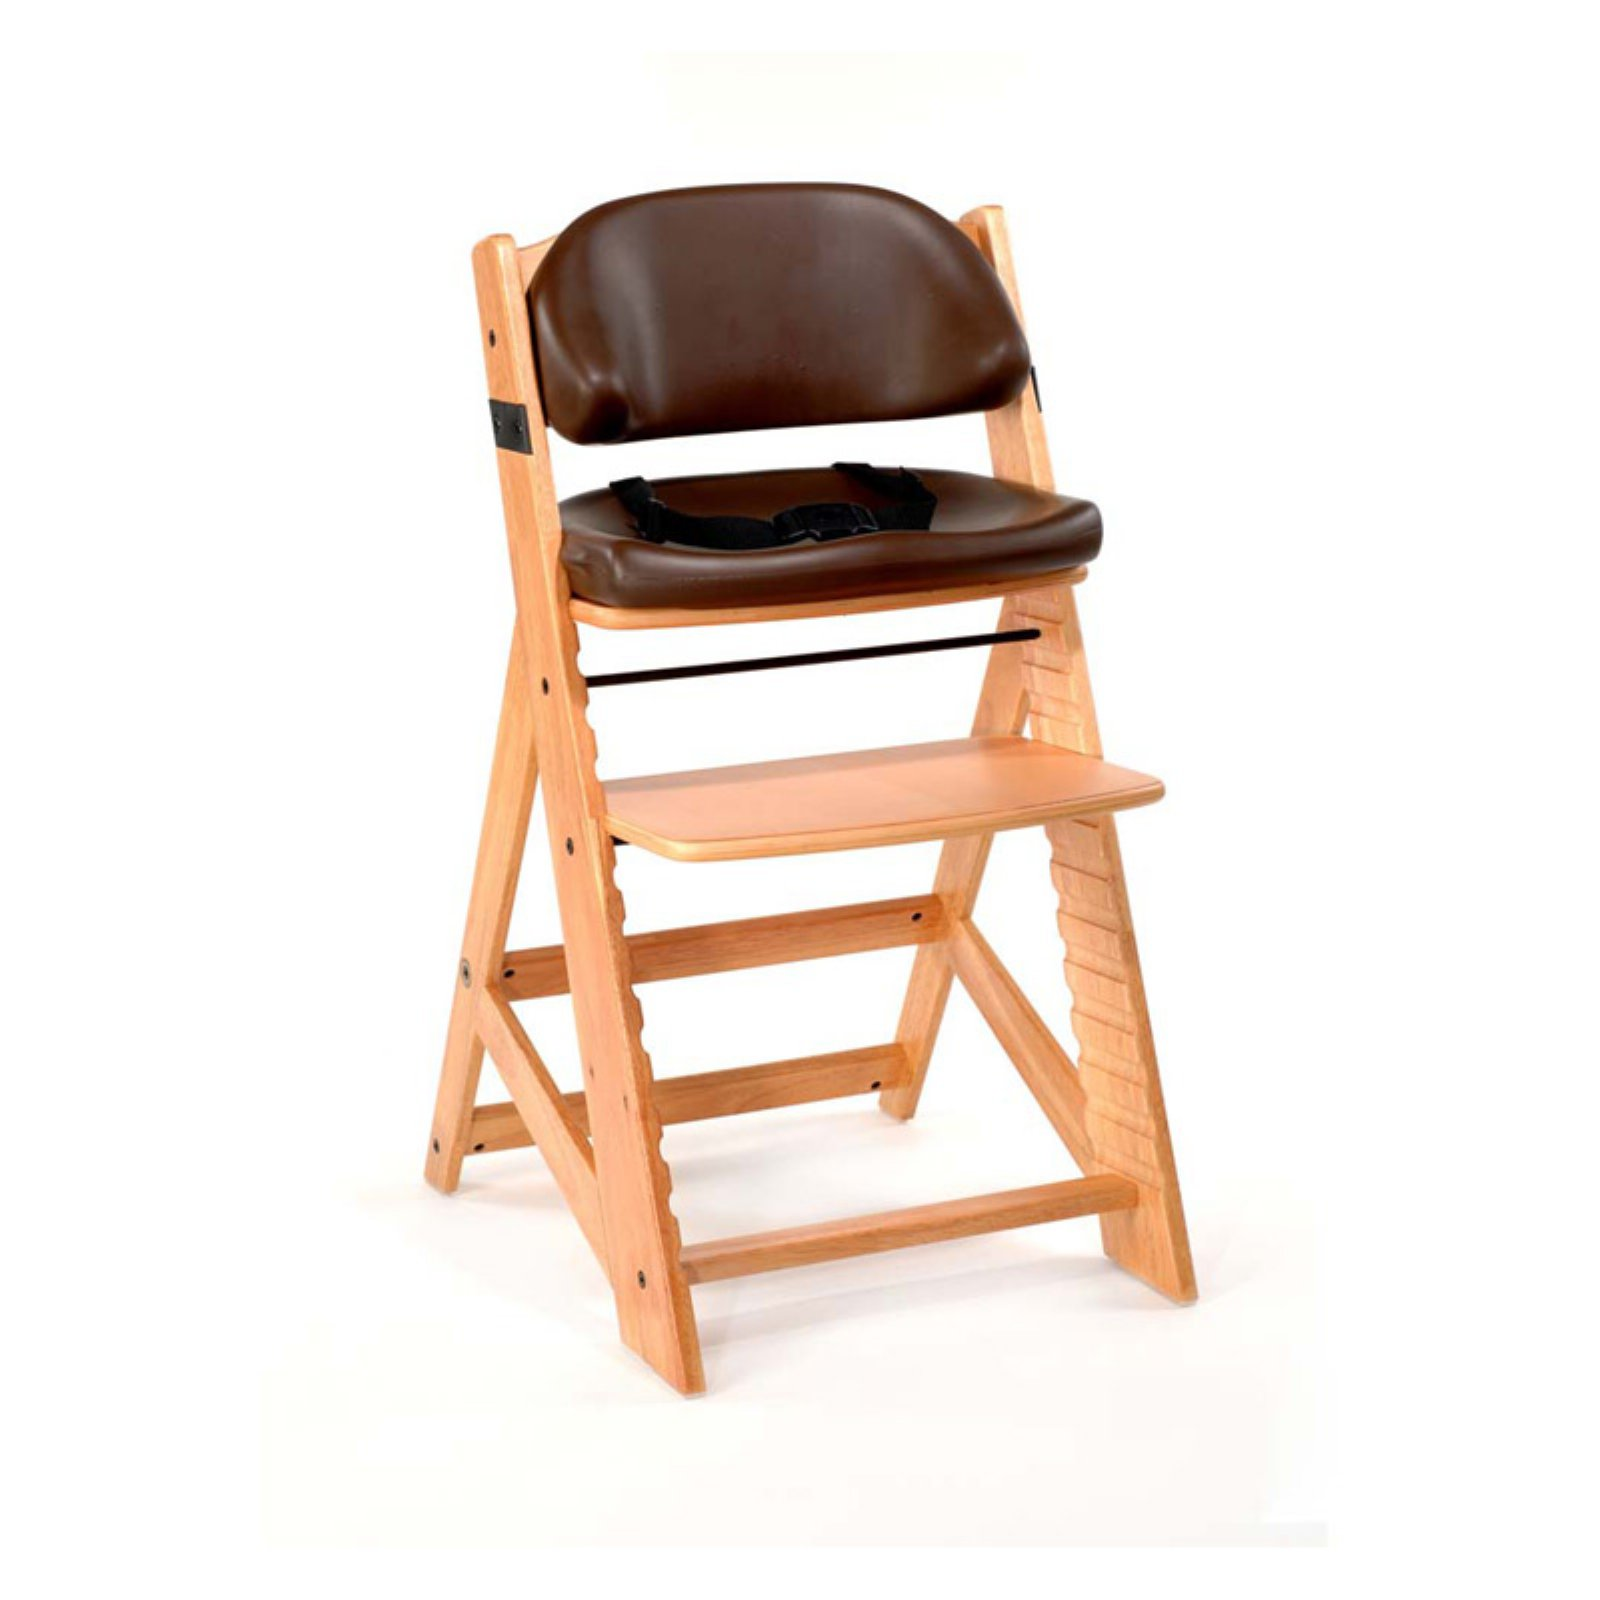 Keekaroo Height Right Kids Chair Natural with Chocolate Comfort Cushions